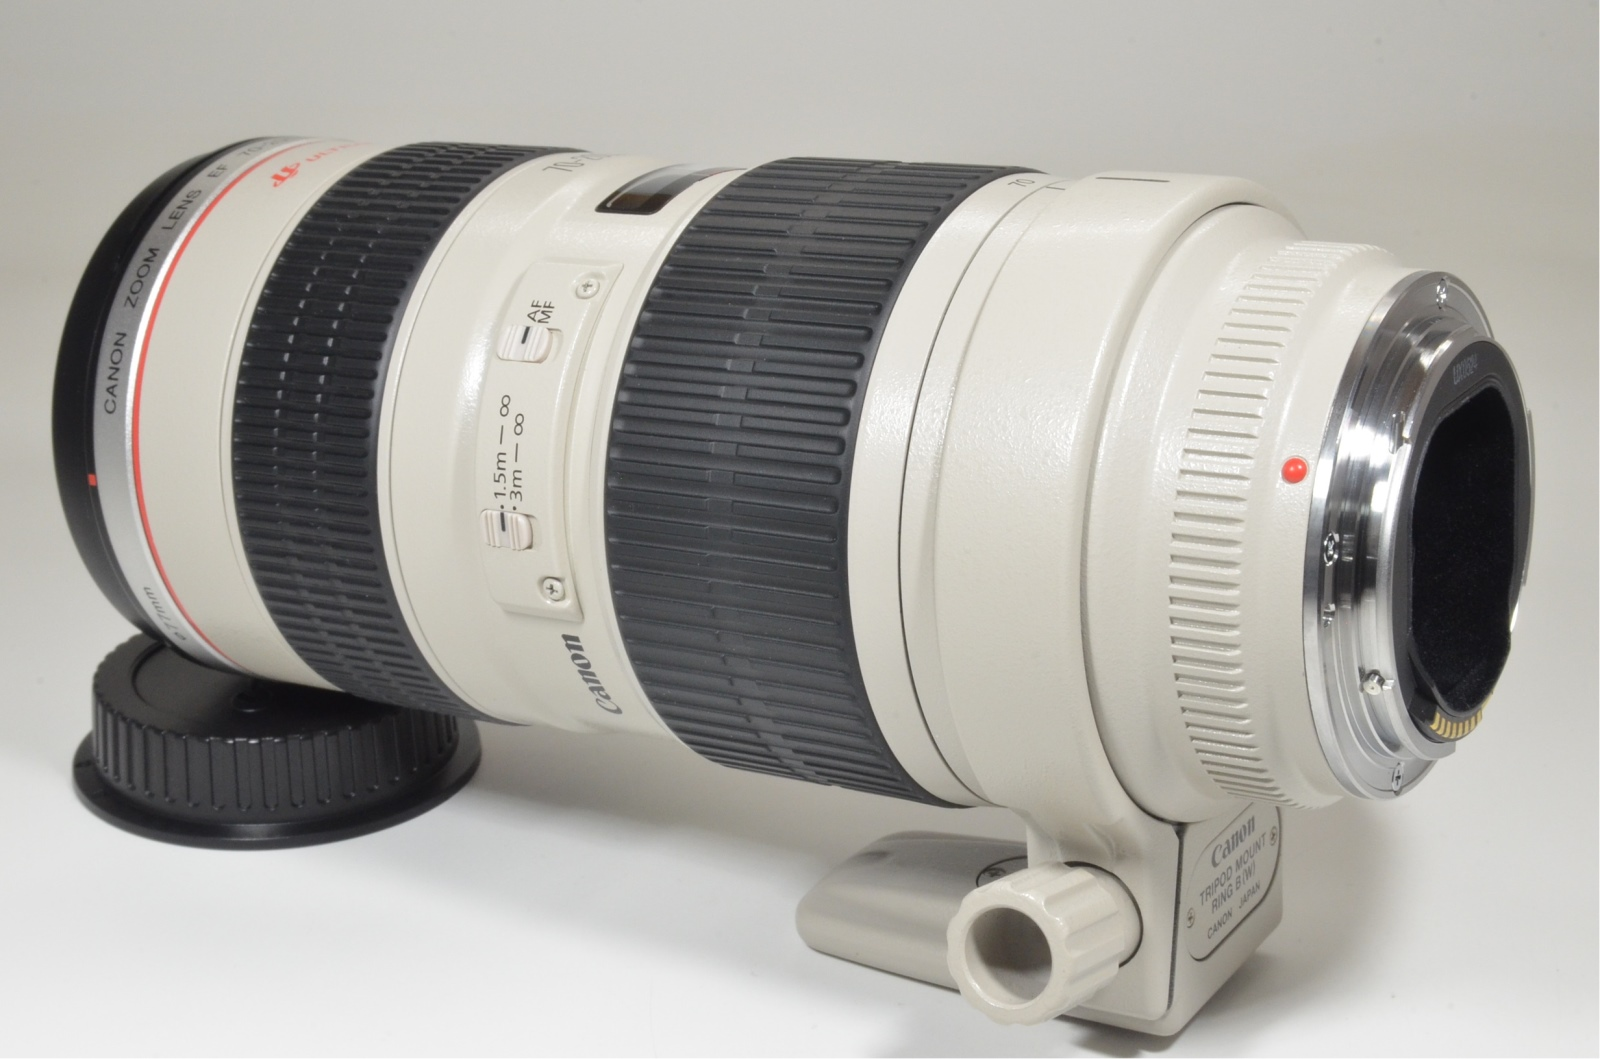 canon ef 70-200mm f/2.8 l usm ultrasonic lens with lenc case